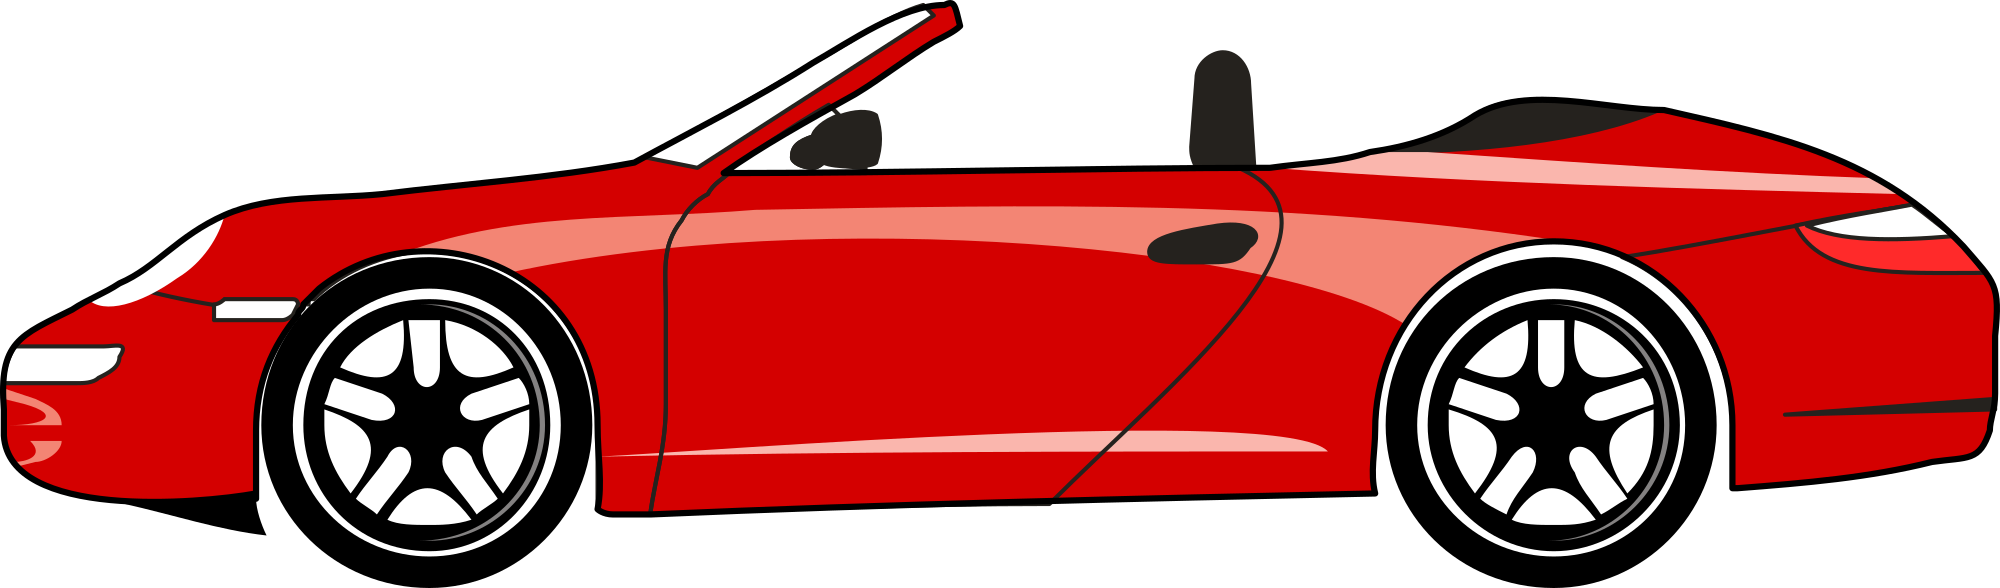 2000x588 free red sports car clipart clipart and vector image